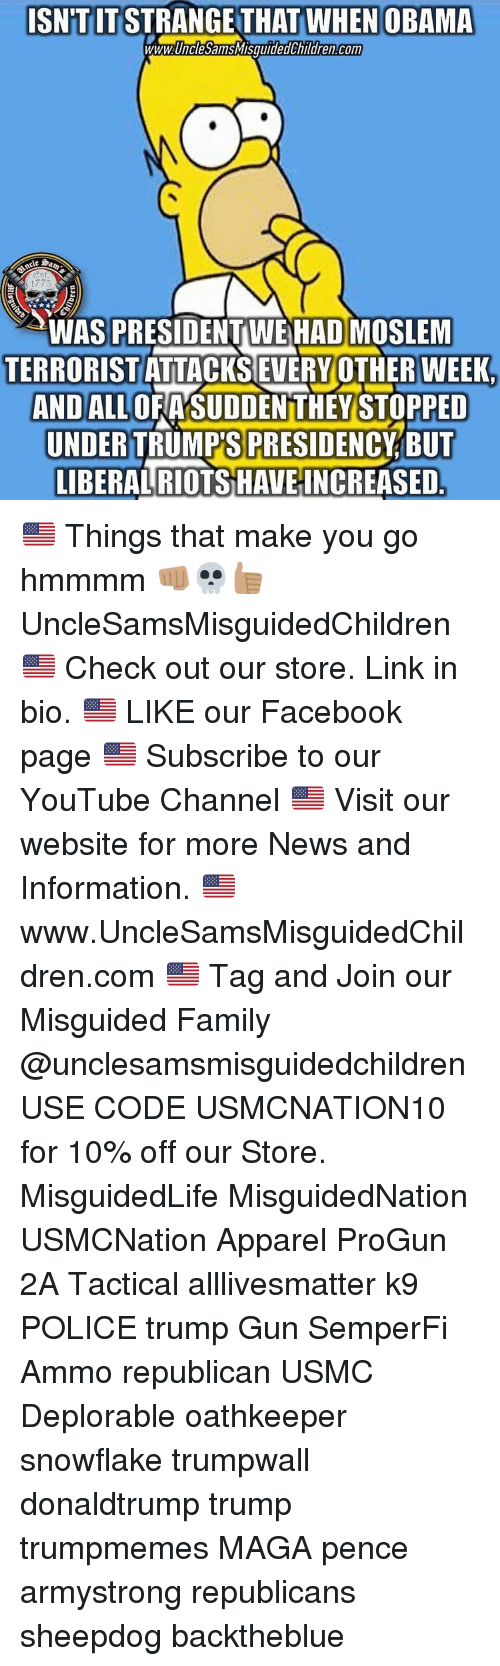 All Lives Matter, Facebook, and Family: ISNTIT STRANGE THAT WHEN OBAMA  ww.UncesansWisguidedchildren Com  WAS PRESIDENT WE HAD MOSLEM  TERRORISTATTACKSEVERYOTHERWEEK.  AND ALL OFASUDDENTTHEY STOPPED  UNDERTRUMPS PRESIDENCY BUT  LIBERAL RIOTS HAVEINCREASED 🇺🇸 Things that make you go hmmmm 👊🏽💀👍🏽 UncleSamsMisguidedChildren 🇺🇸 Check out our store. Link in bio. 🇺🇸 LIKE our Facebook page 🇺🇸 Subscribe to our YouTube Channel 🇺🇸 Visit our website for more News and Information. 🇺🇸 www.UncleSamsMisguidedChildren.com 🇺🇸 Tag and Join our Misguided Family @unclesamsmisguidedchildren USE CODE USMCNATION10 for 10% off our Store. MisguidedLife MisguidedNation USMCNation Apparel ProGun 2A Tactical alllivesmatter k9 POLICE trump Gun SemperFi Ammo republican USMC Deplorable oathkeeper snowflake trumpwall donaldtrump trump trumpmemes MAGA pence armystrong republicans sheepdog backtheblue